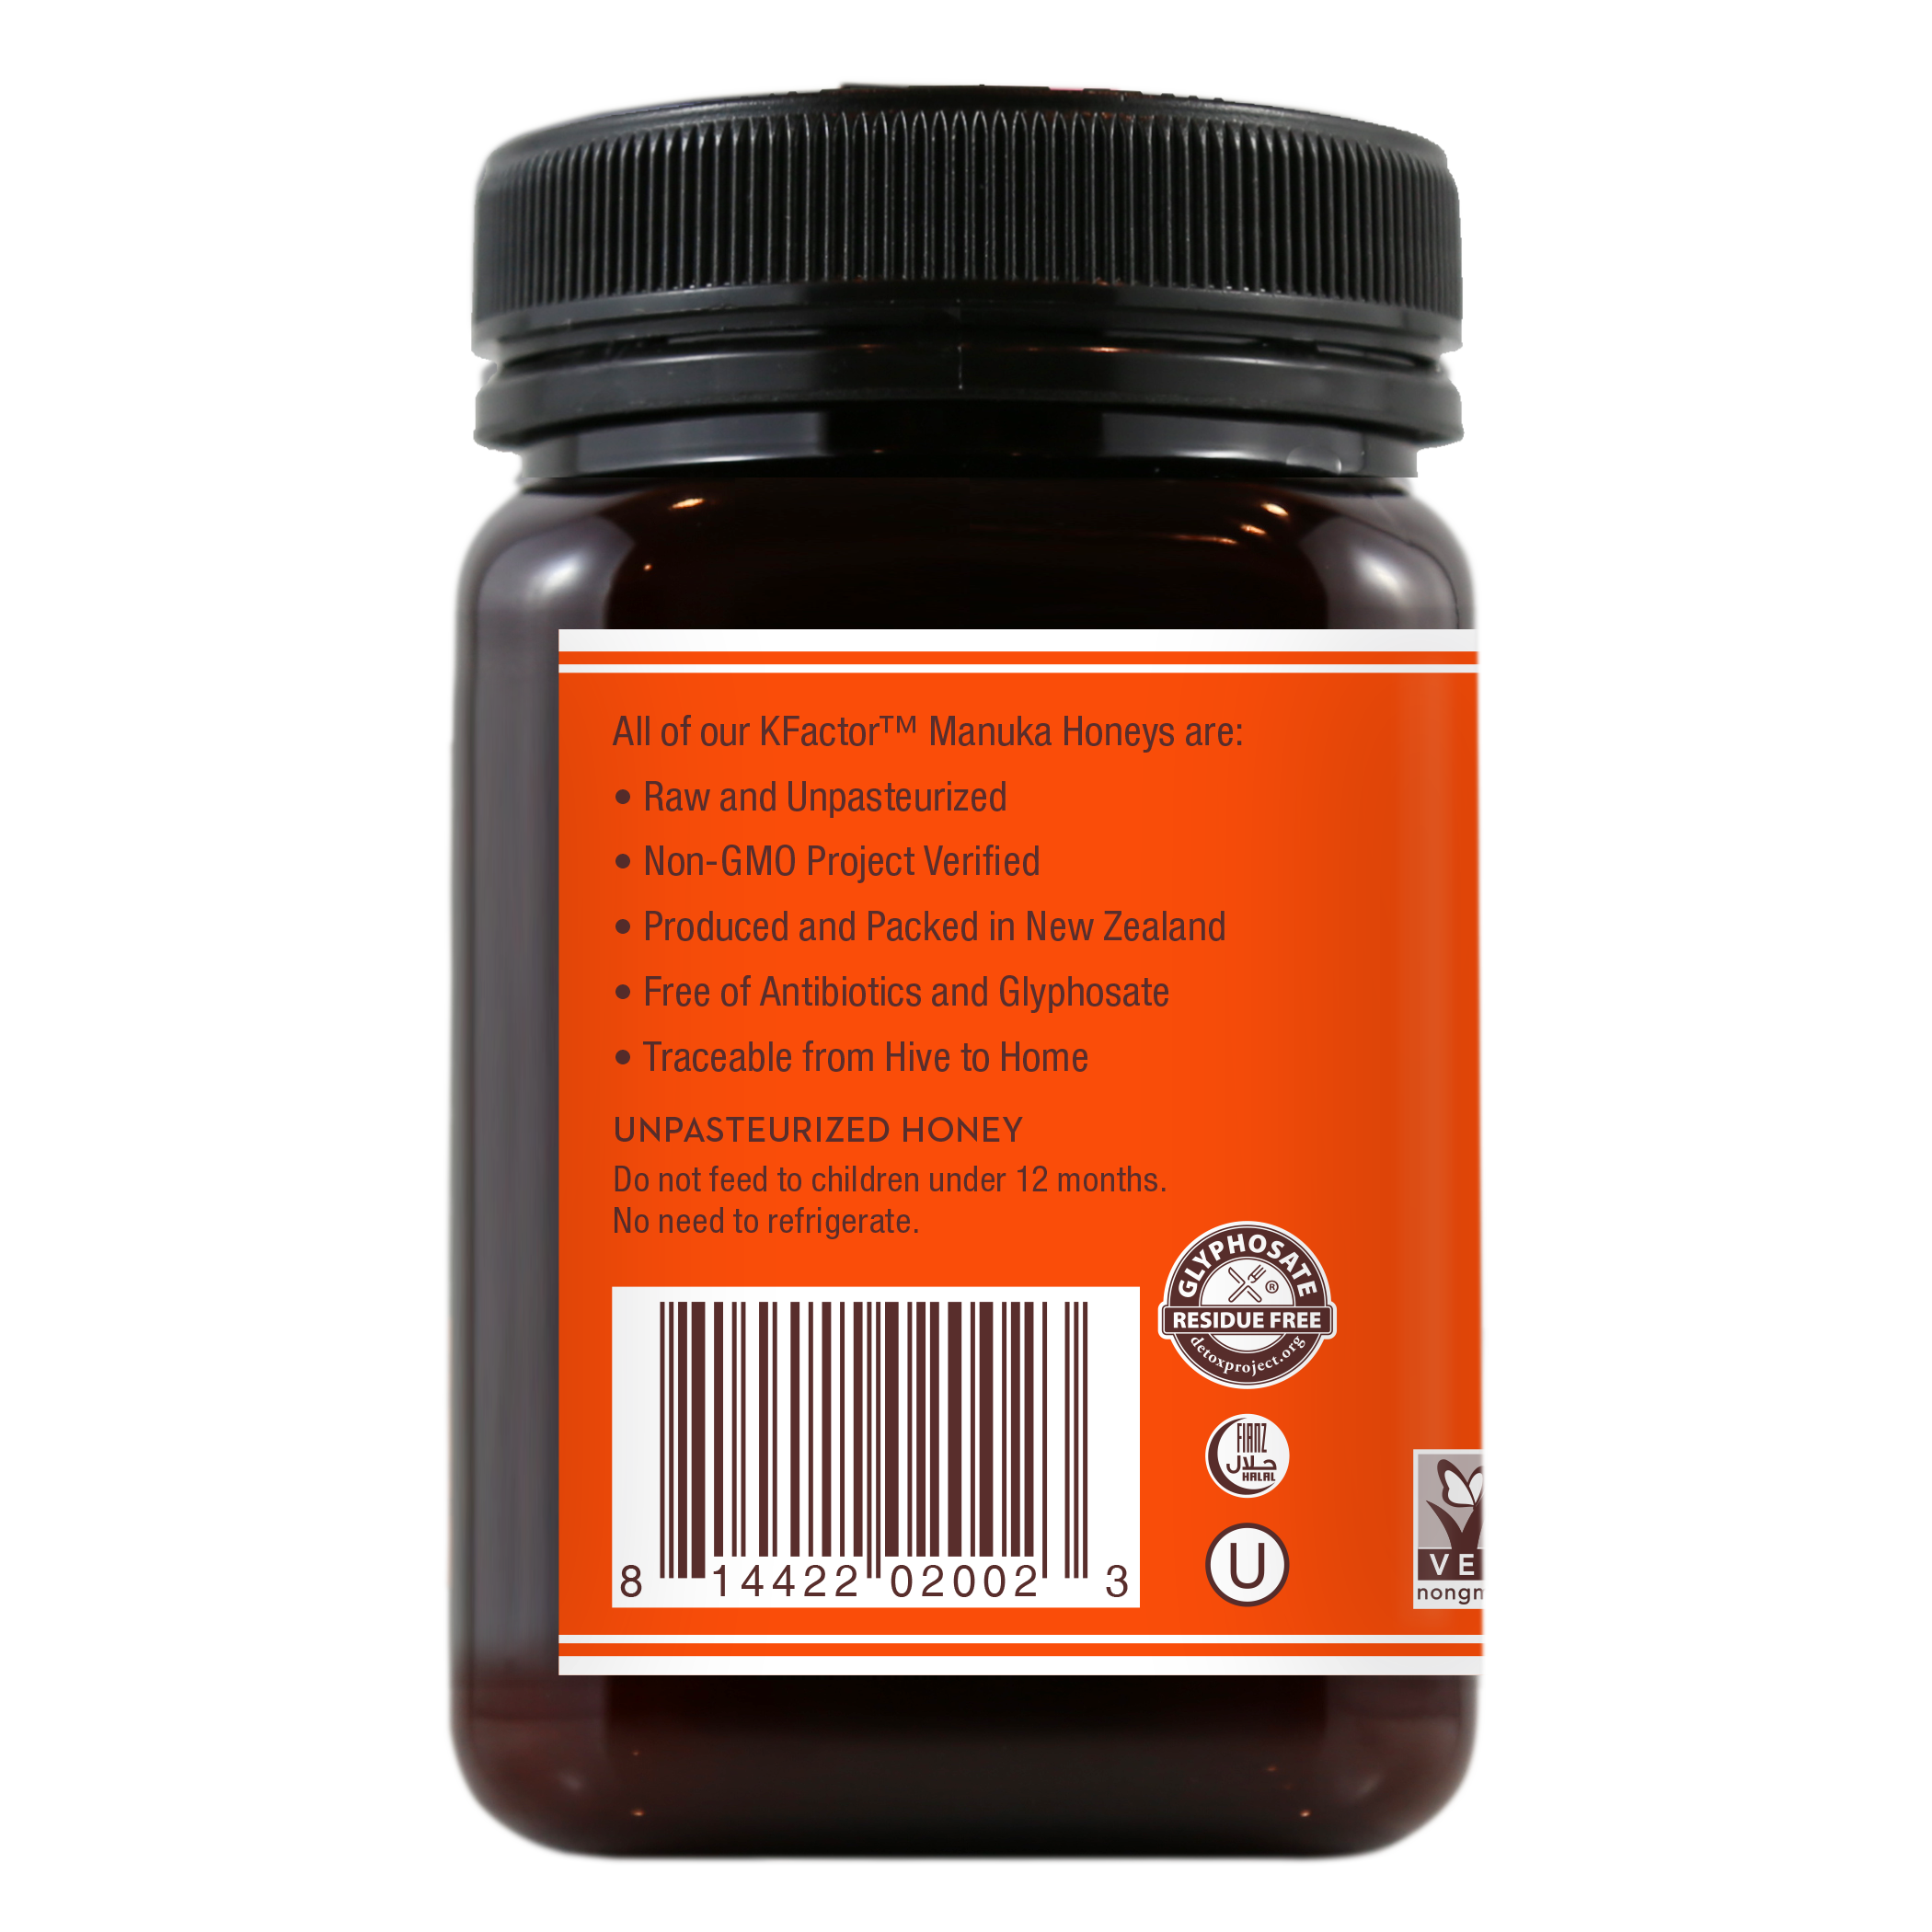 Raw Monofloral Manuka Honey KFactor 16, 500g/17.6oz